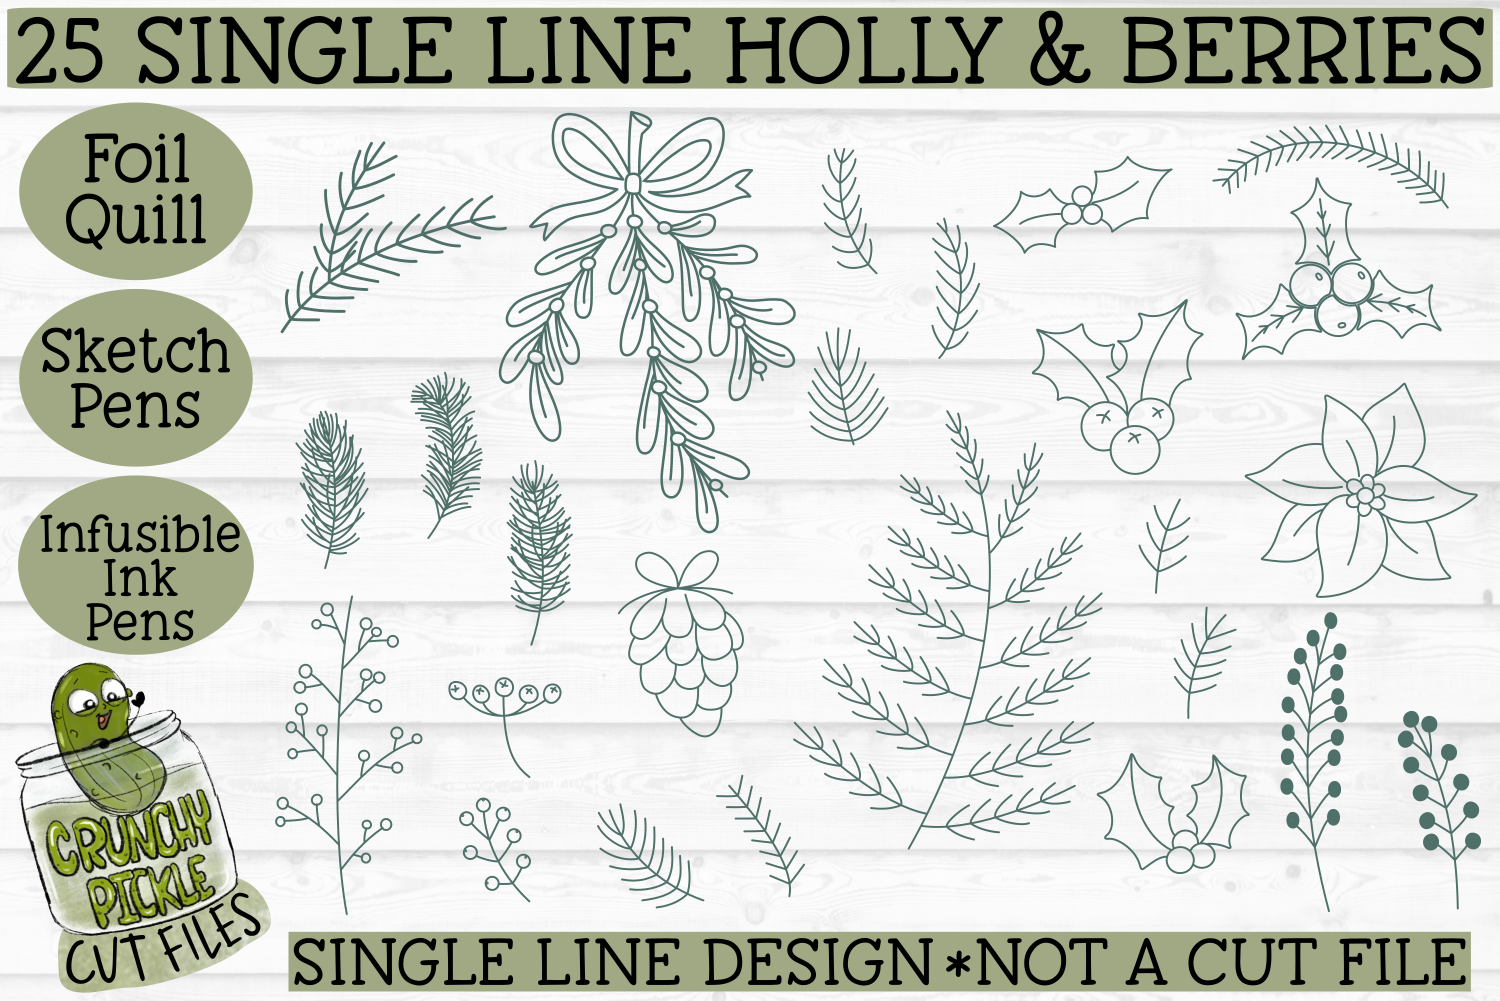 Foil Quill Christmas 27 Holly Berries Set Single Line By